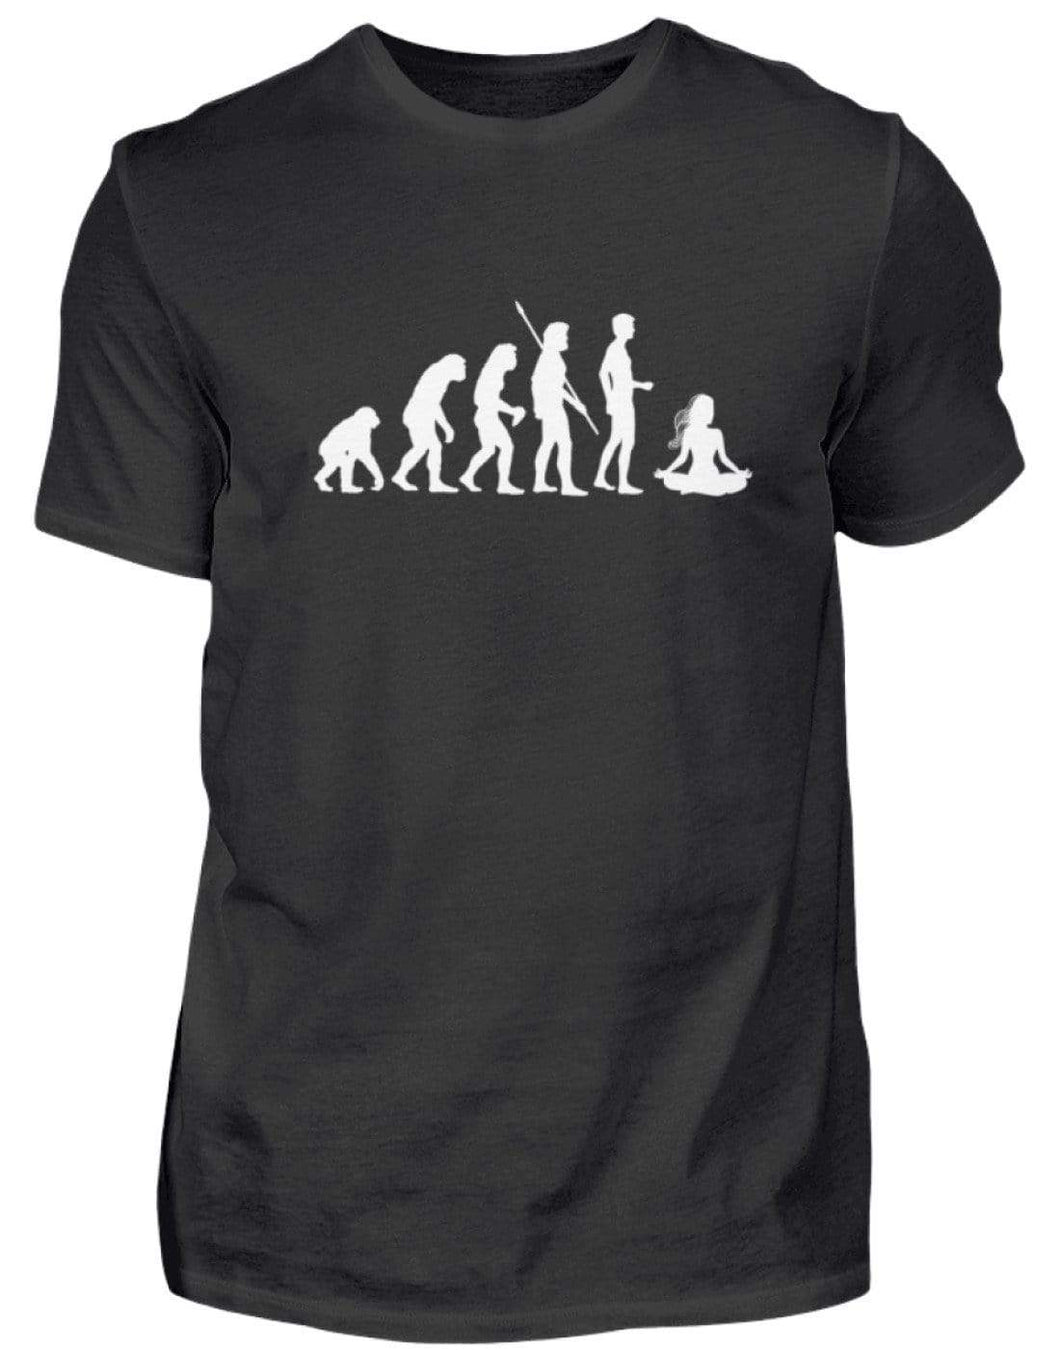 Herren Basic T-Shirt Black / S Yoga: Evolution Yogi  - Herren Shirt